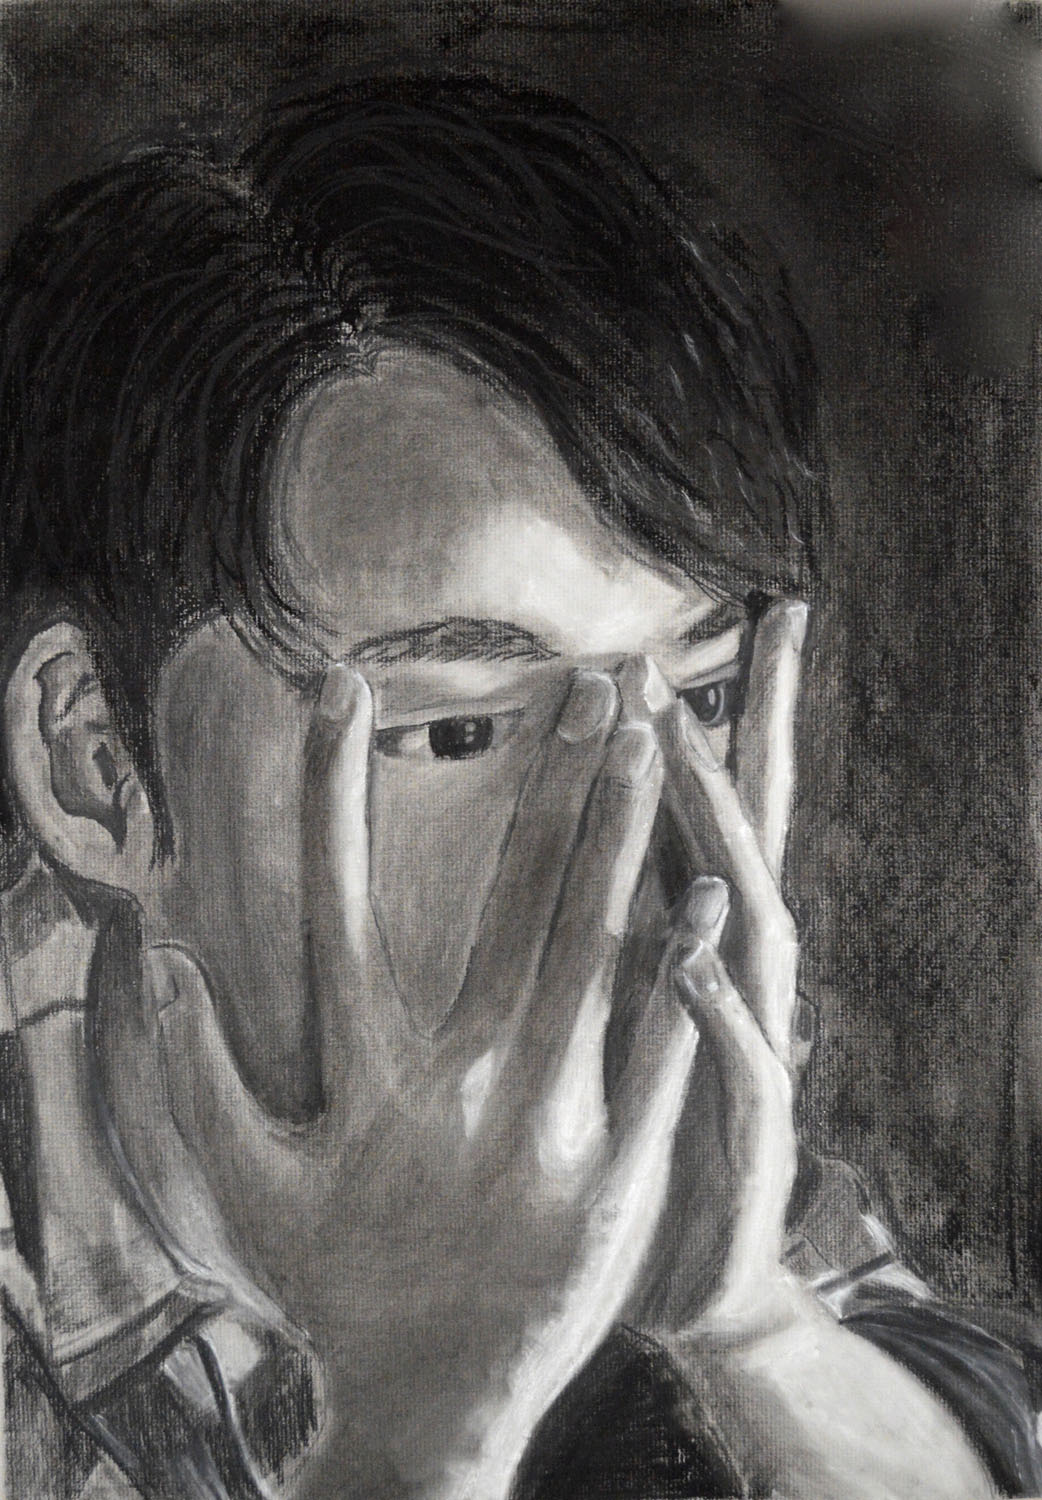 Black and white self portrait of a distraught-looking young man holding his face in his hands.